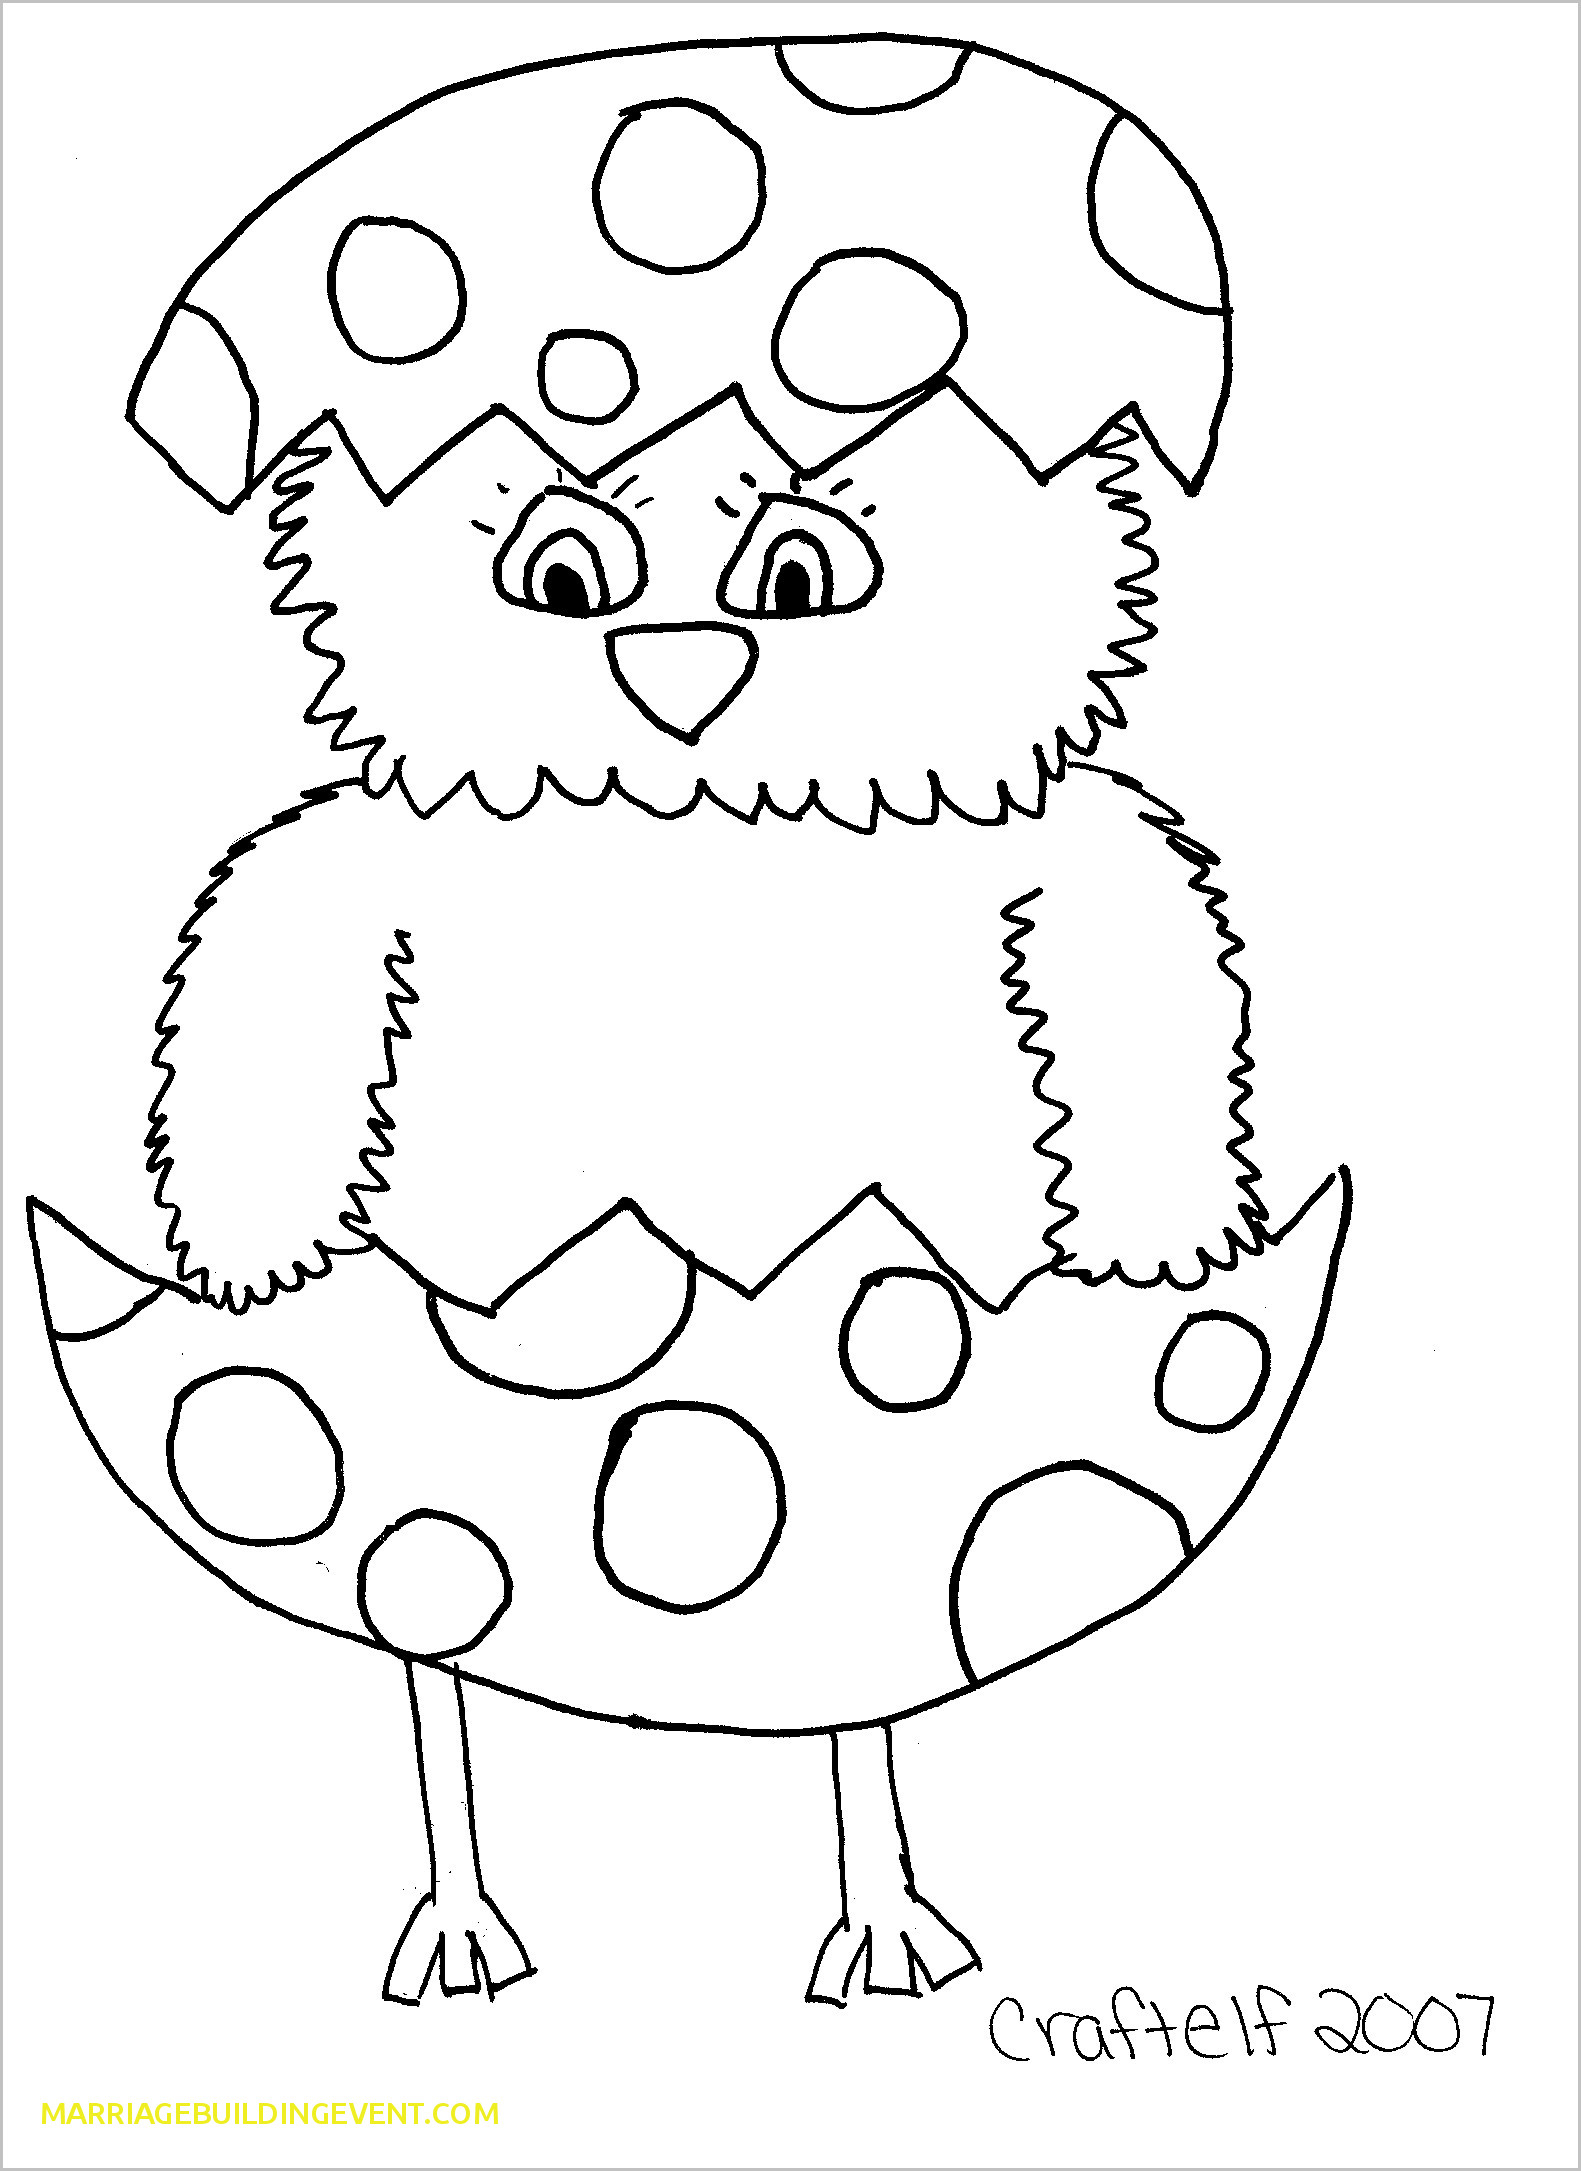 Beau Easter Coloring Pages For Kids To Print   Marriagebuildingevent - Free Printable Easter Coloring Pages For Toddlers